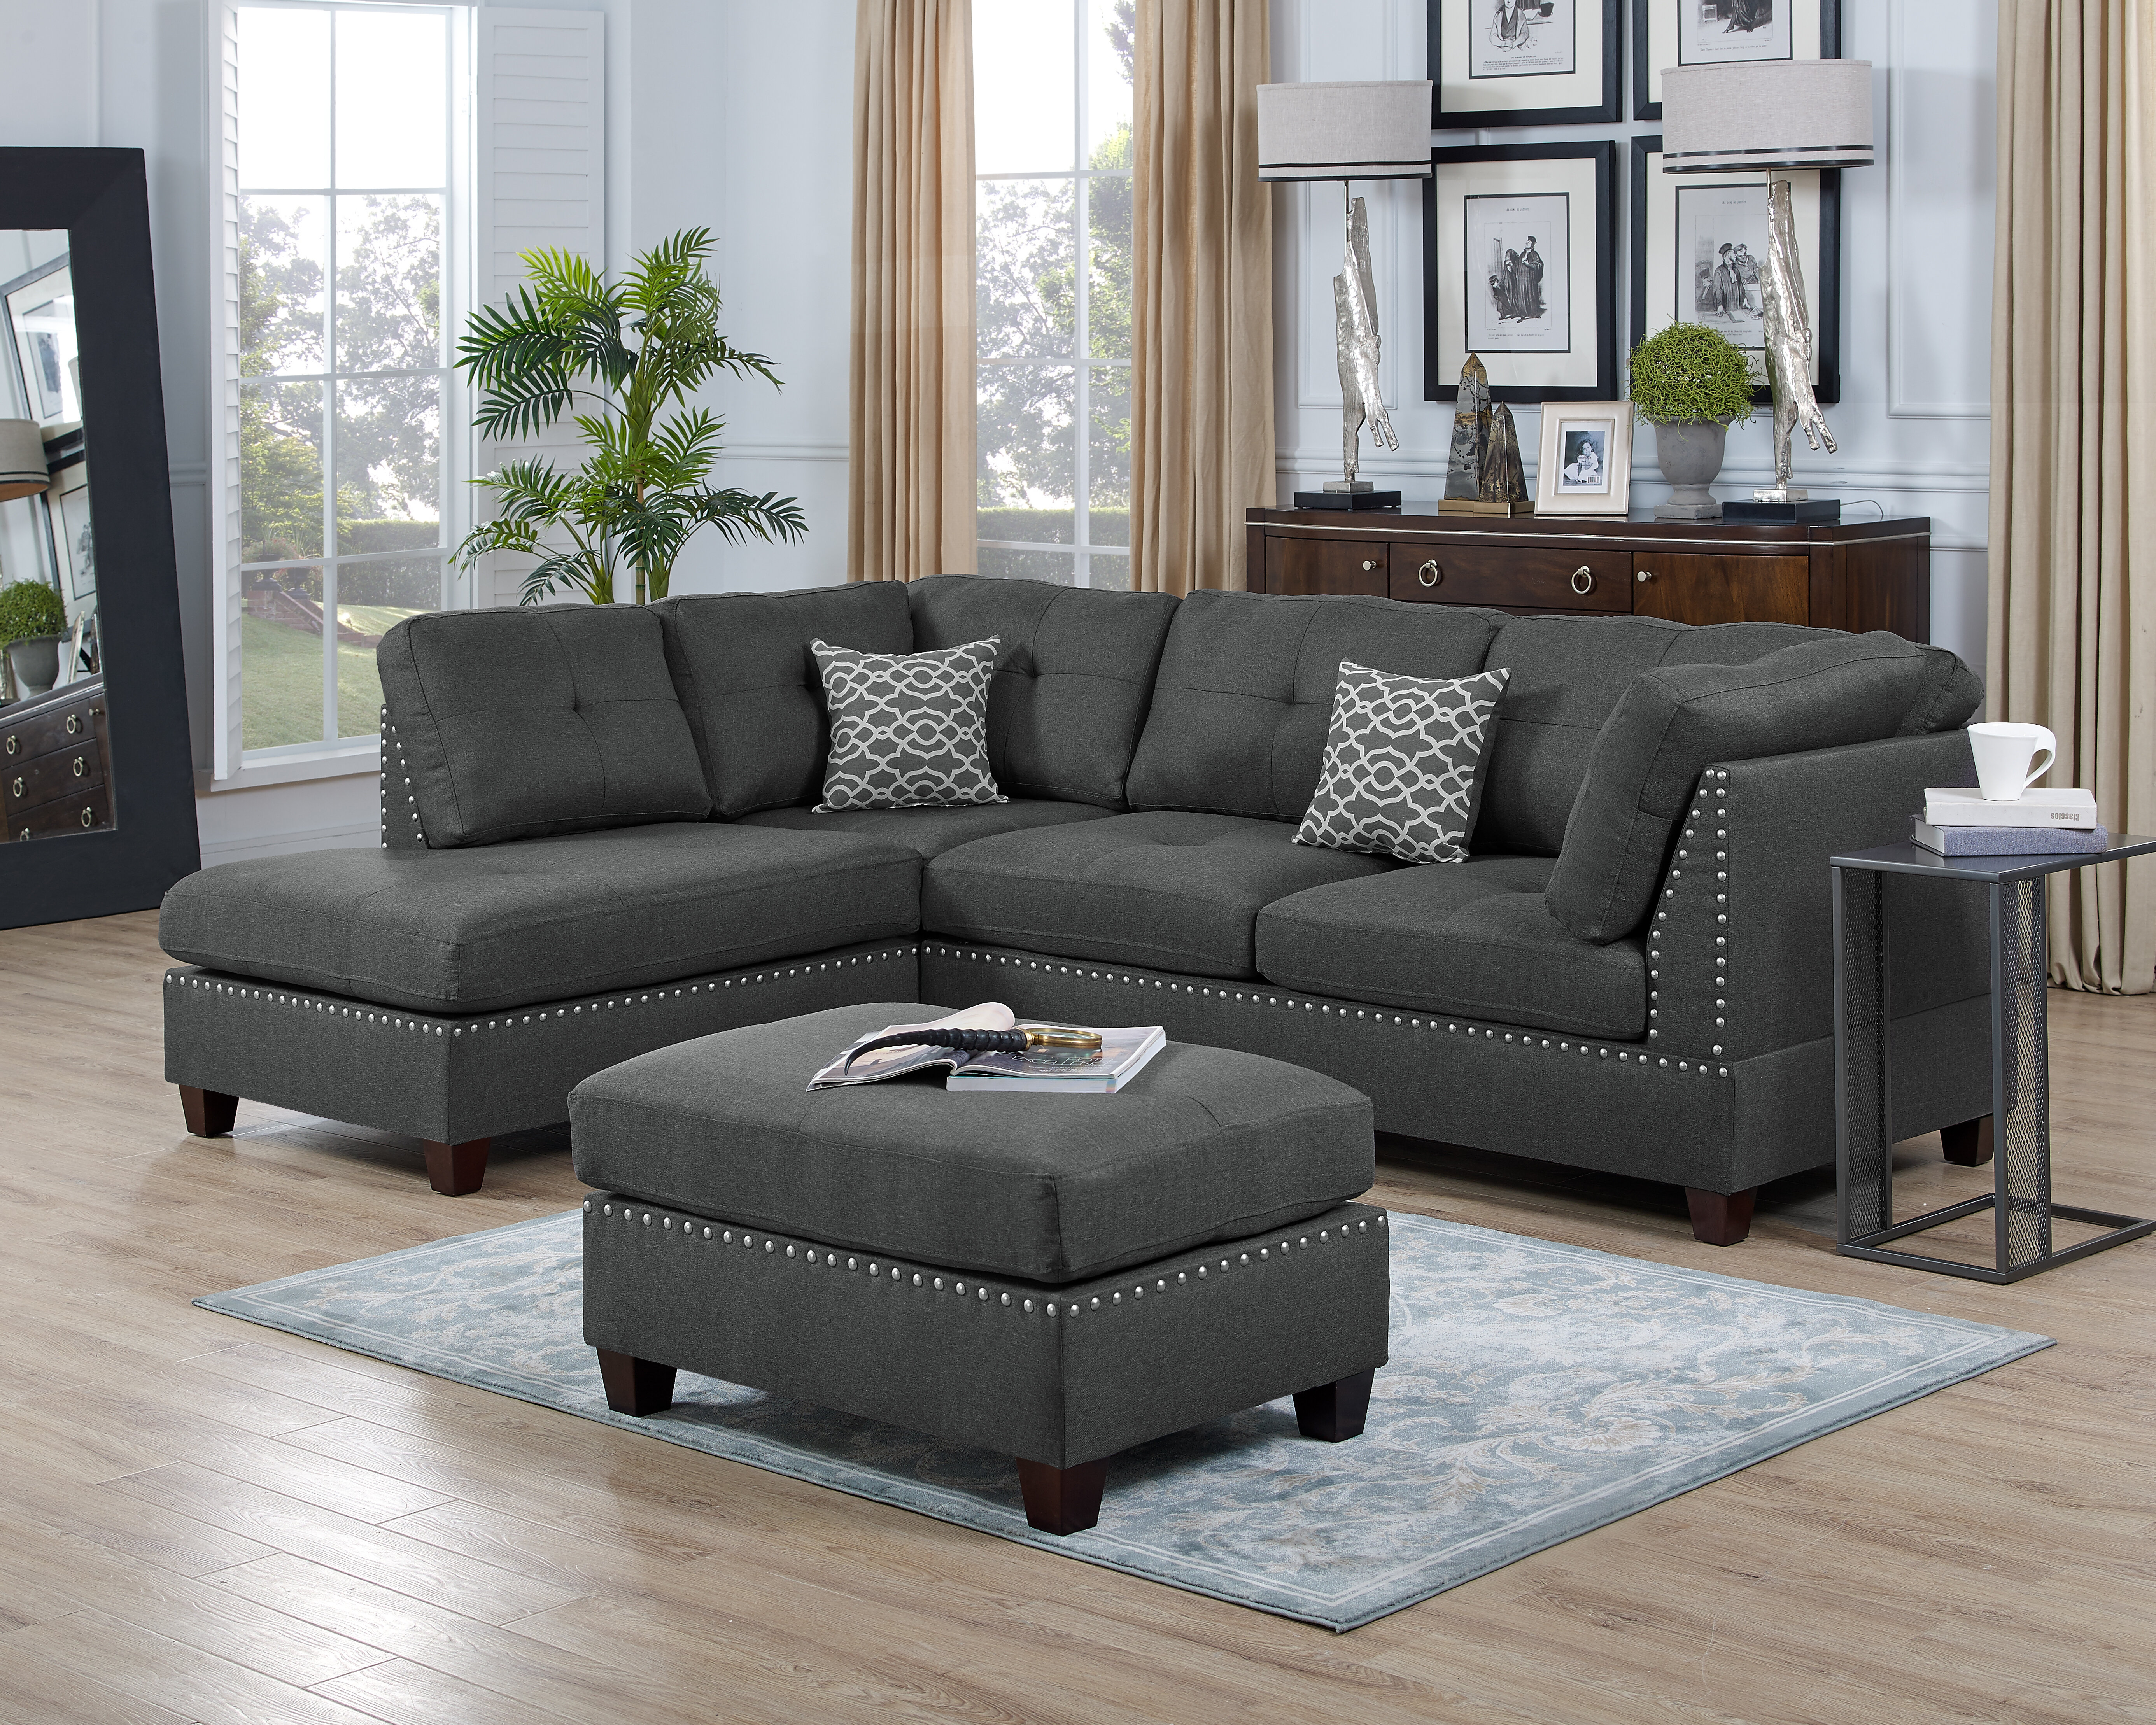 Sectionals, Sectional Sofas & Couches You'll Love in 2021 | Wayfair